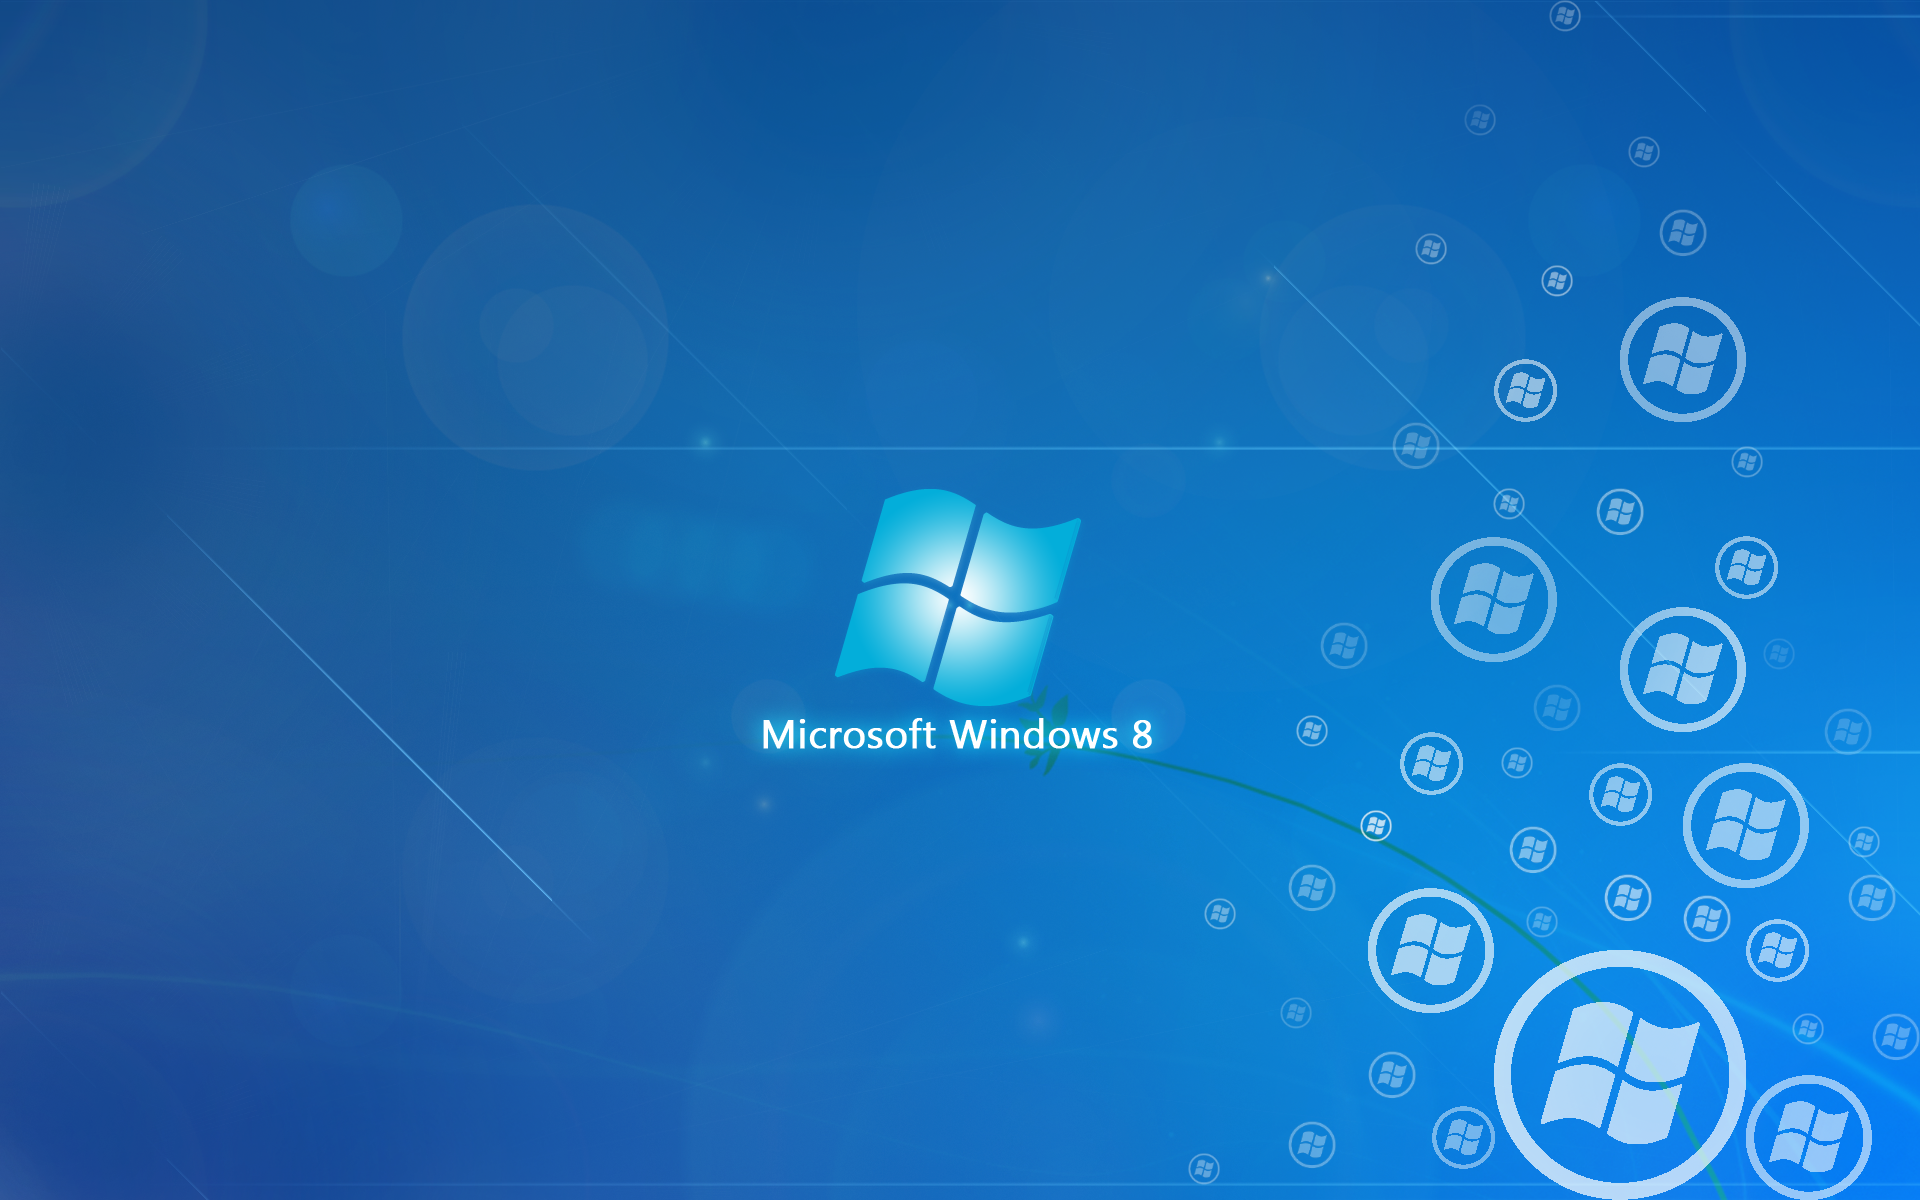 Windows 8 Clipart Hd Free Download.